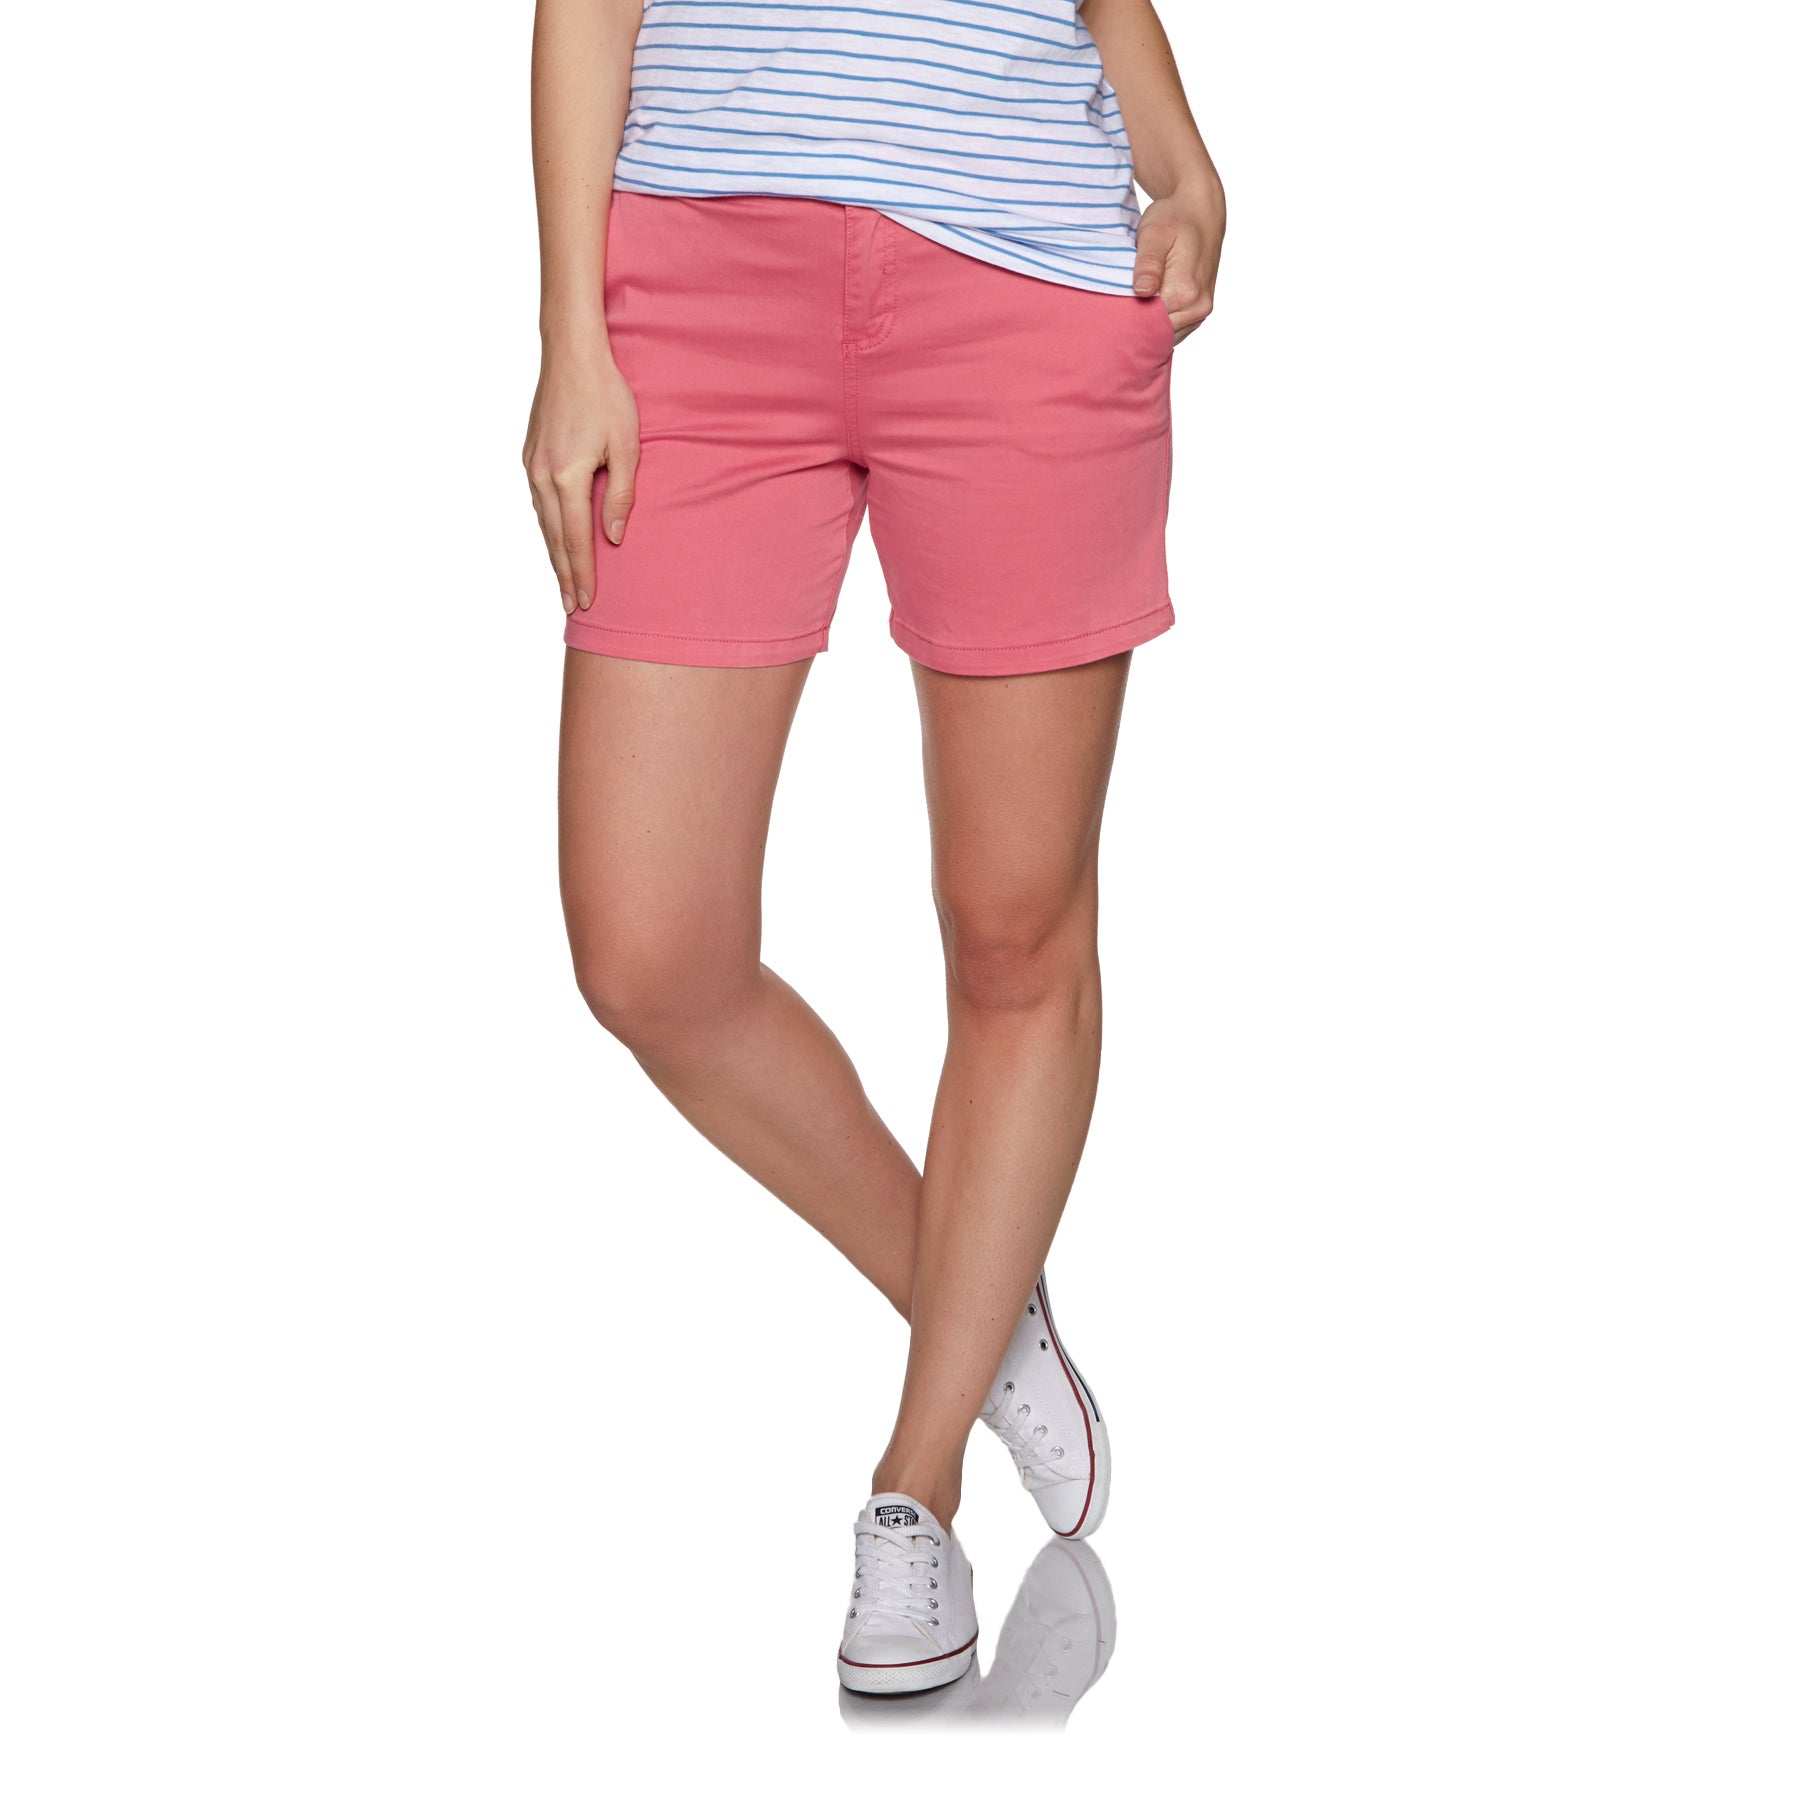 Joules Cruise Womens Walk Shorts - Redsky